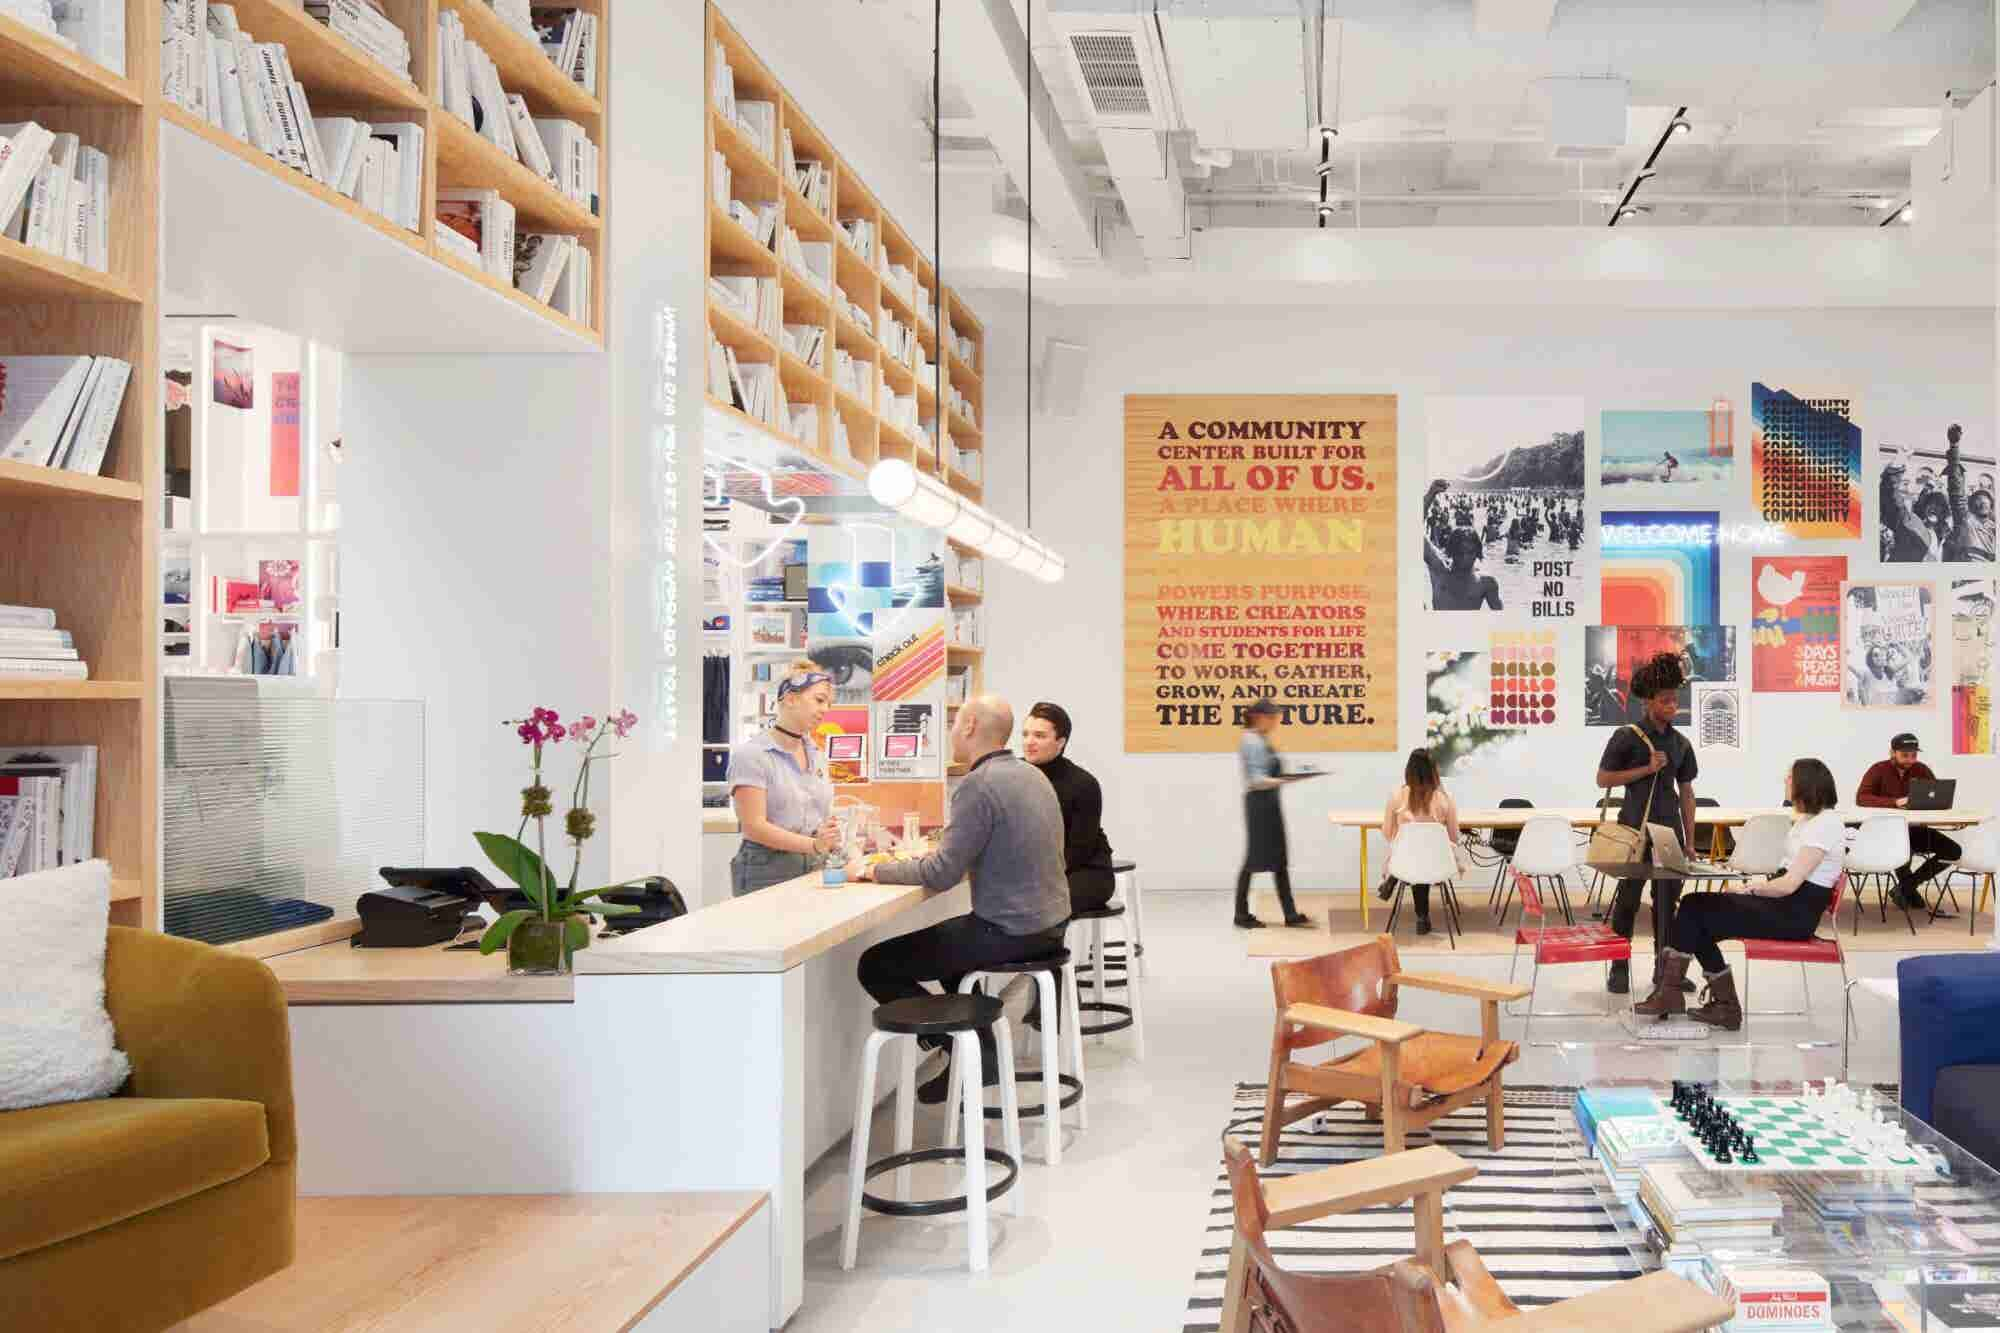 Coworking Space Behemoth WeWork Launches Retail and Coworking Space That's Open to the Public